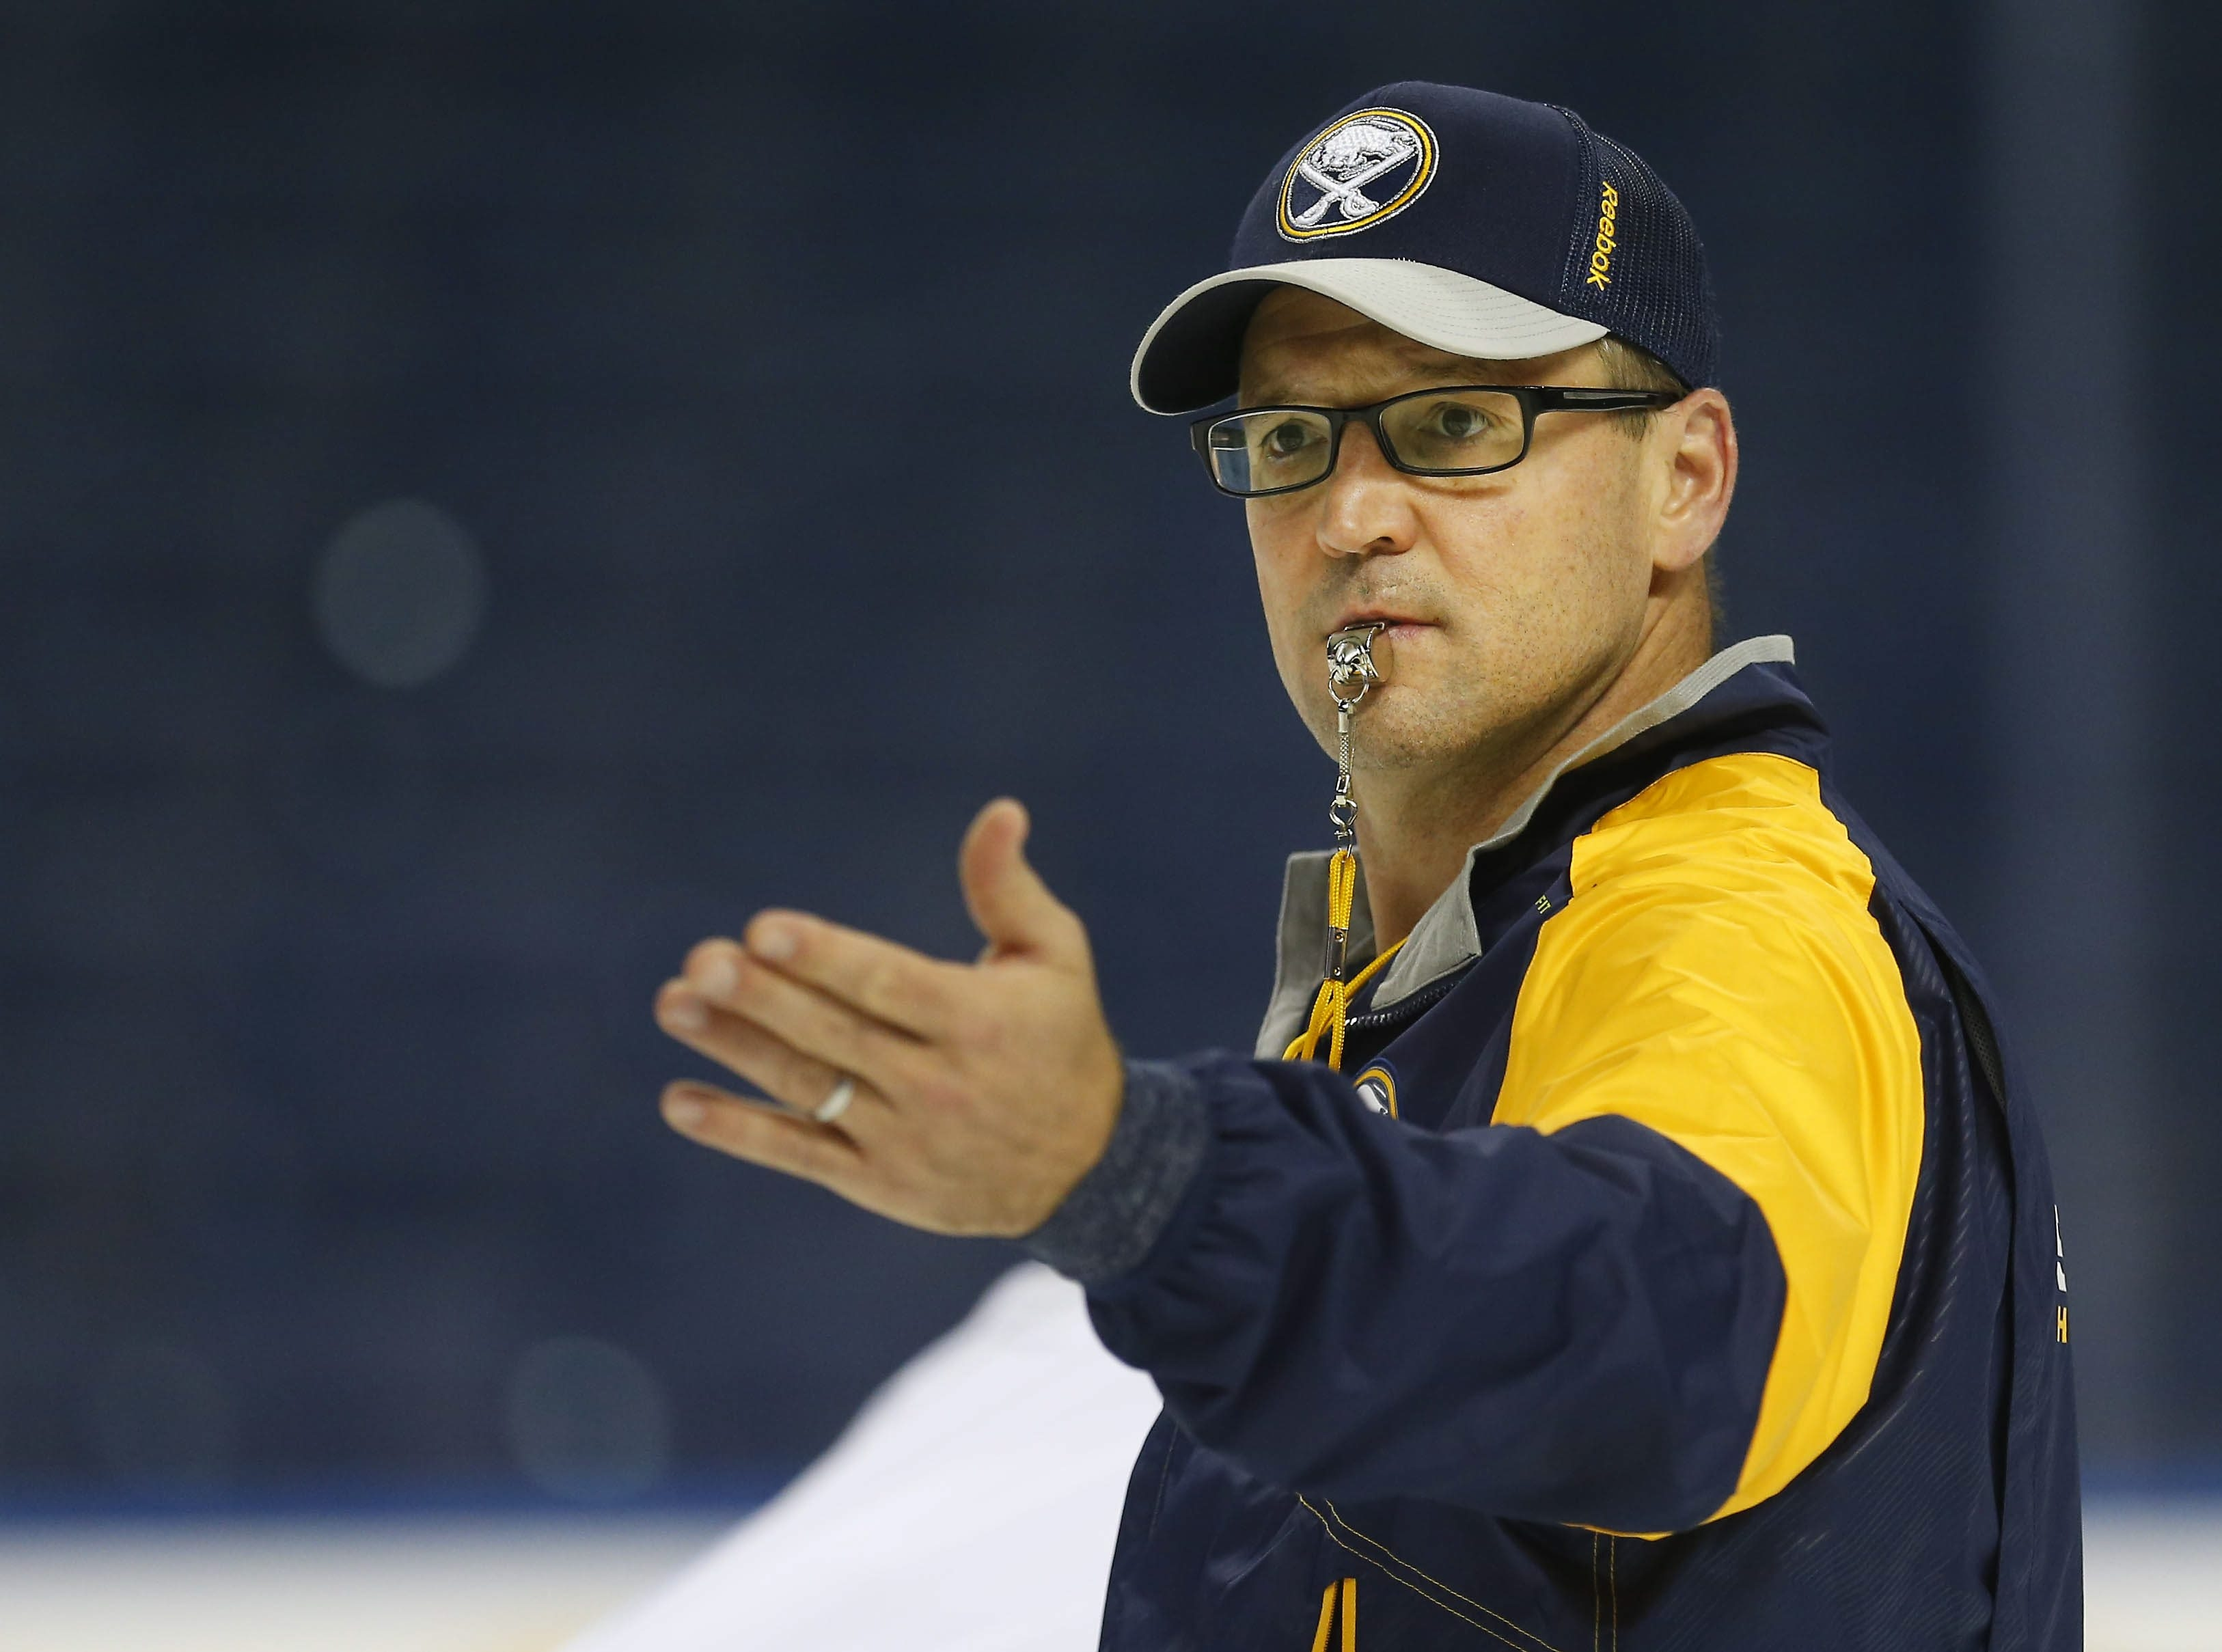 Buffalo Sabres coach Dan Bylsma doesn't want to use the burden of back-to-back games as an excuse.